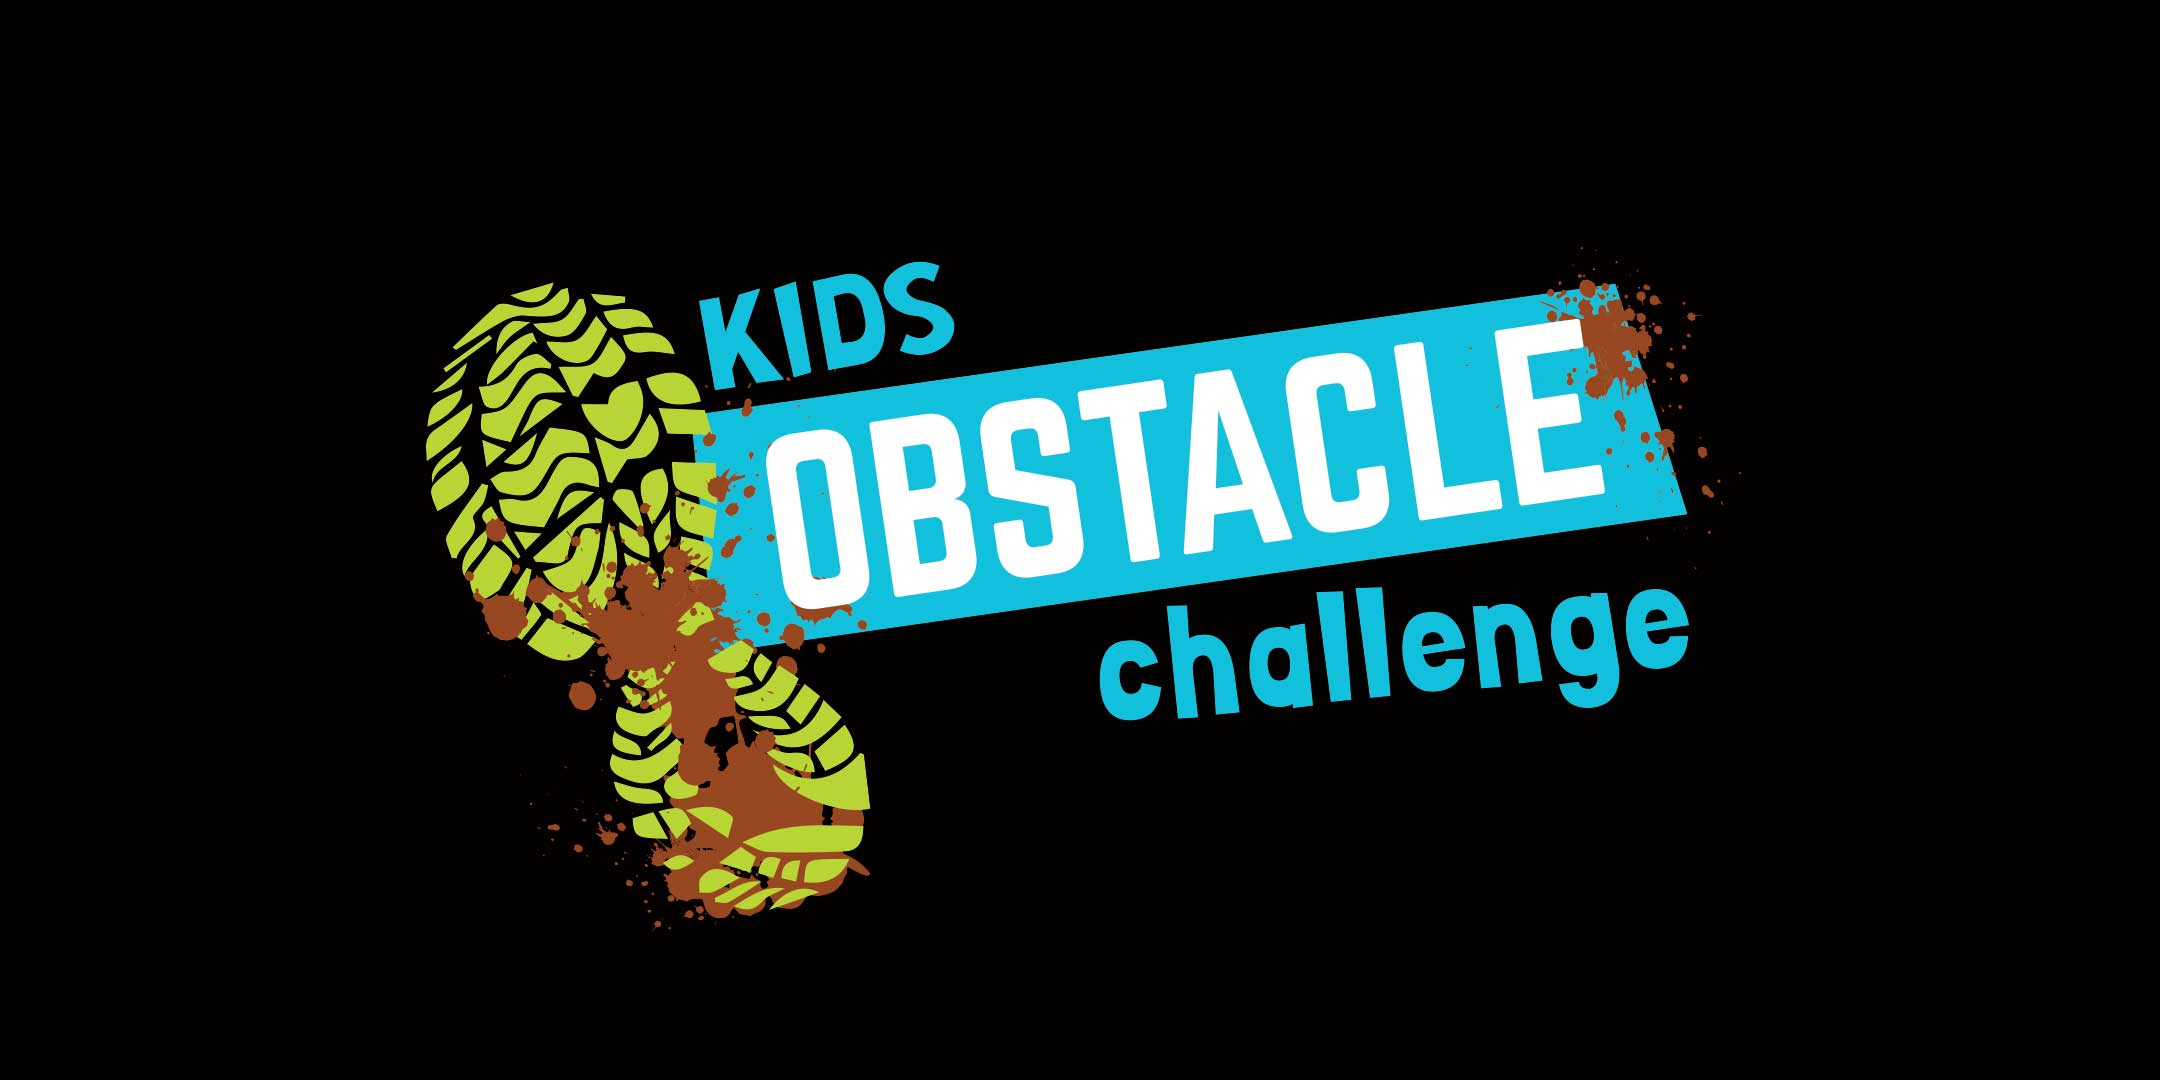 Kid S Obsticle Chalenge